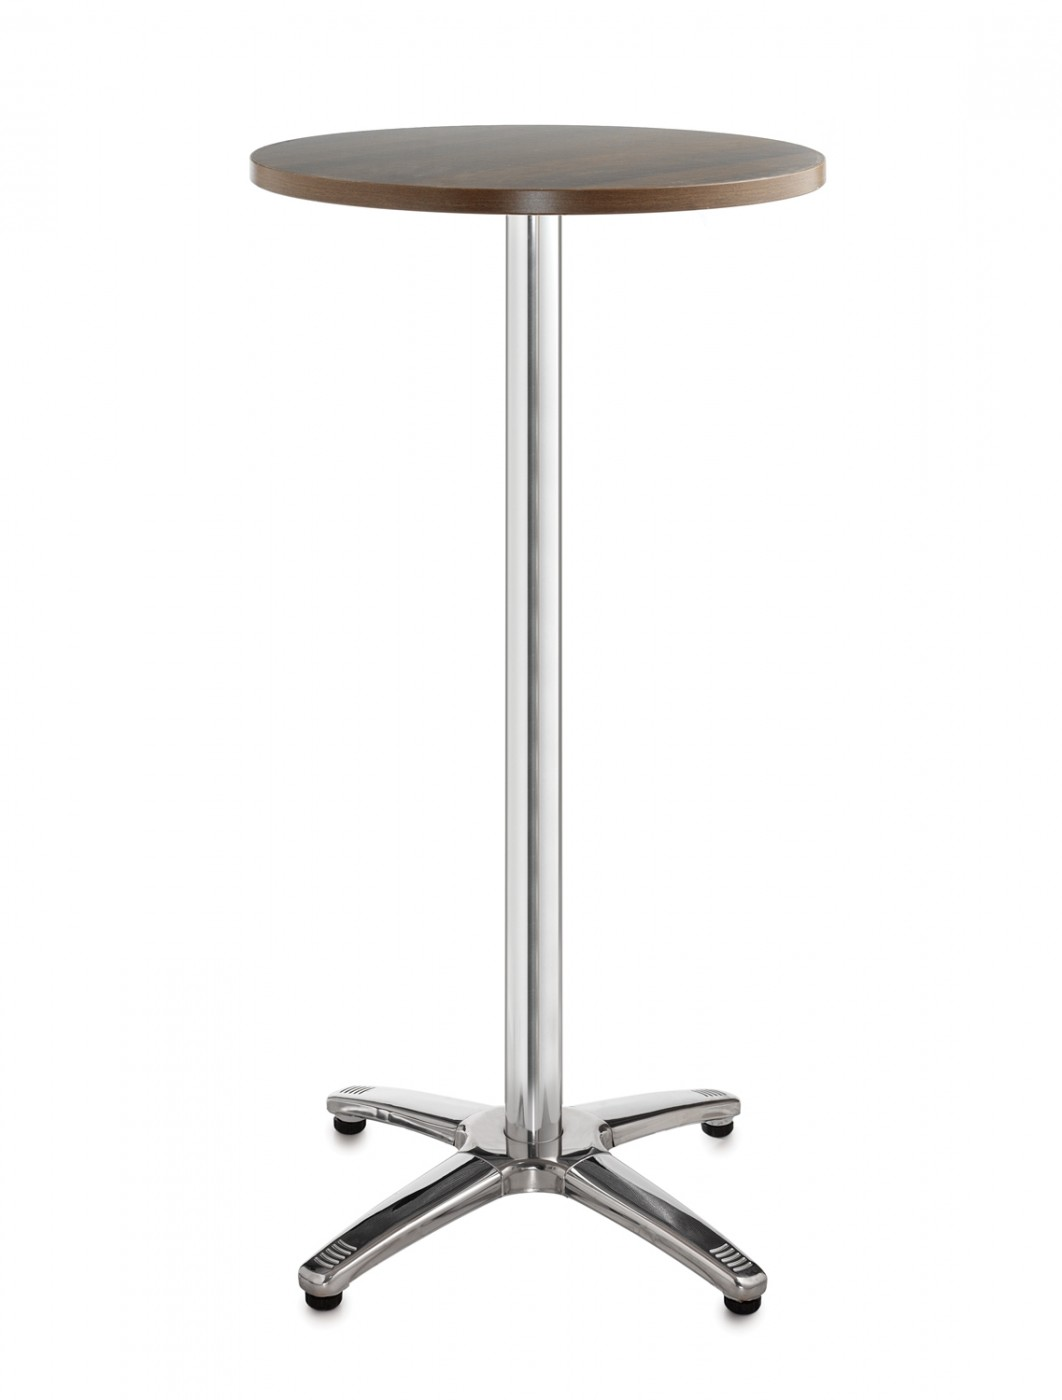 Attractive Bistro Or Cafe Tall Round Table R6PT   Roma Aluminium 600mm   Enlarged View